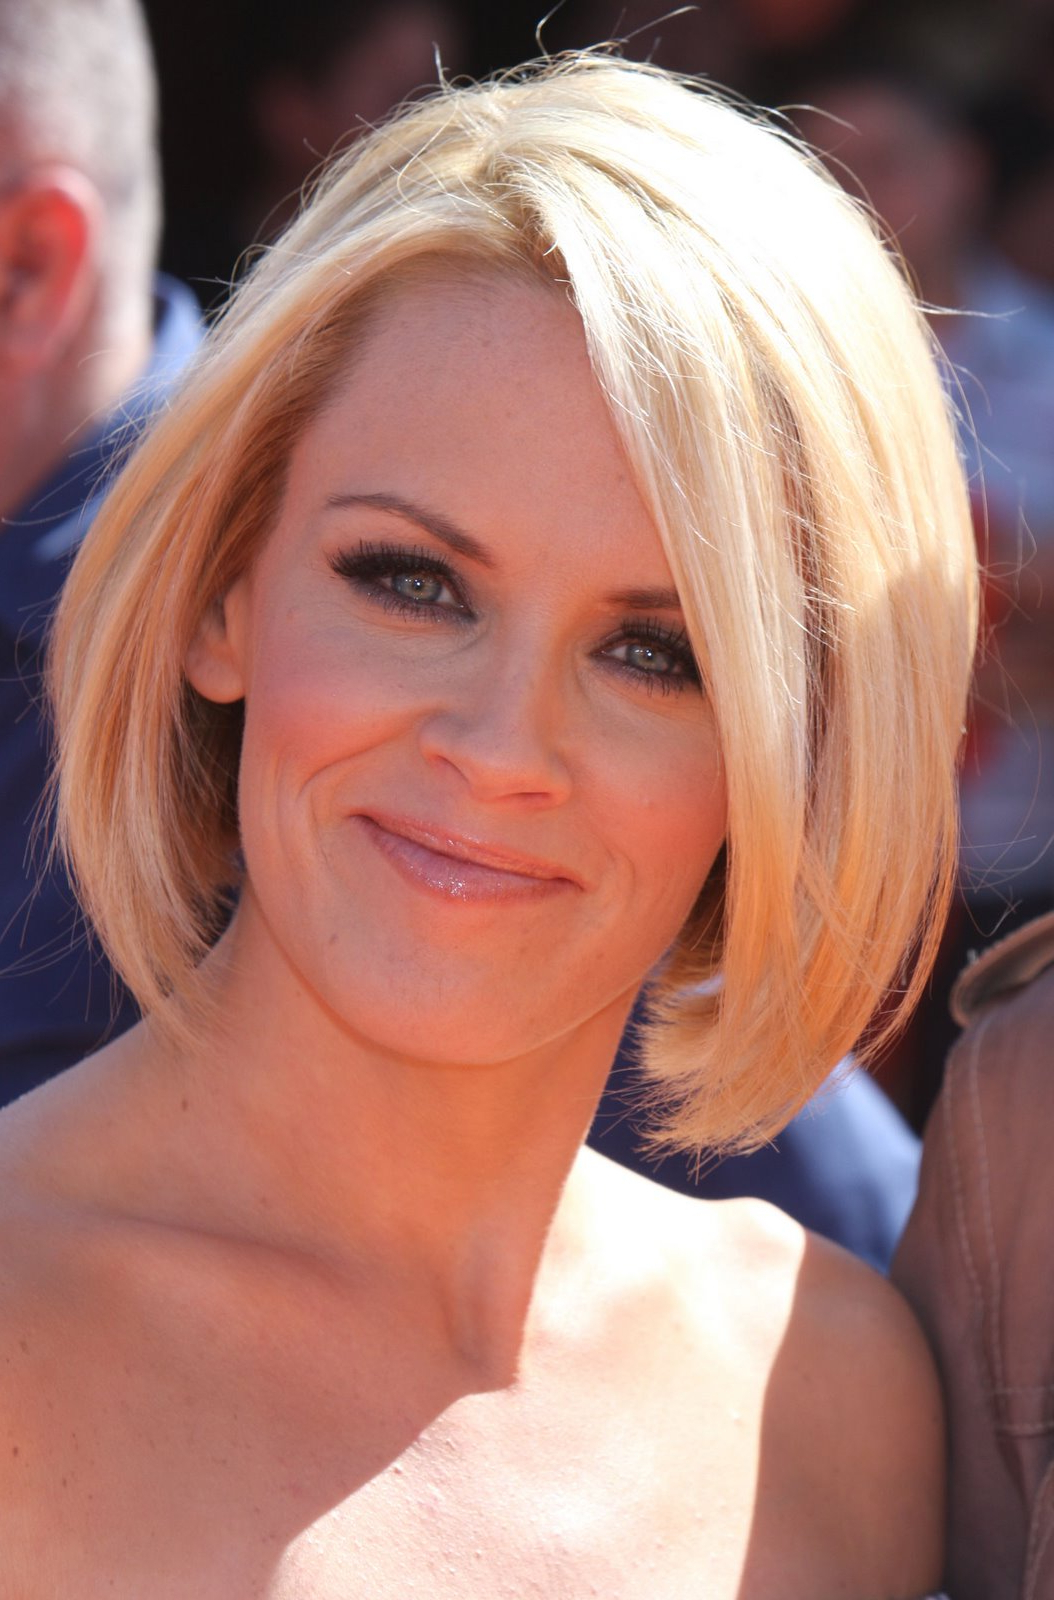 Short To Medium Hairstyles 2013 – Hairstyle For Women & Man Within Women Short To Medium Hairstyles (View 15 of 25)